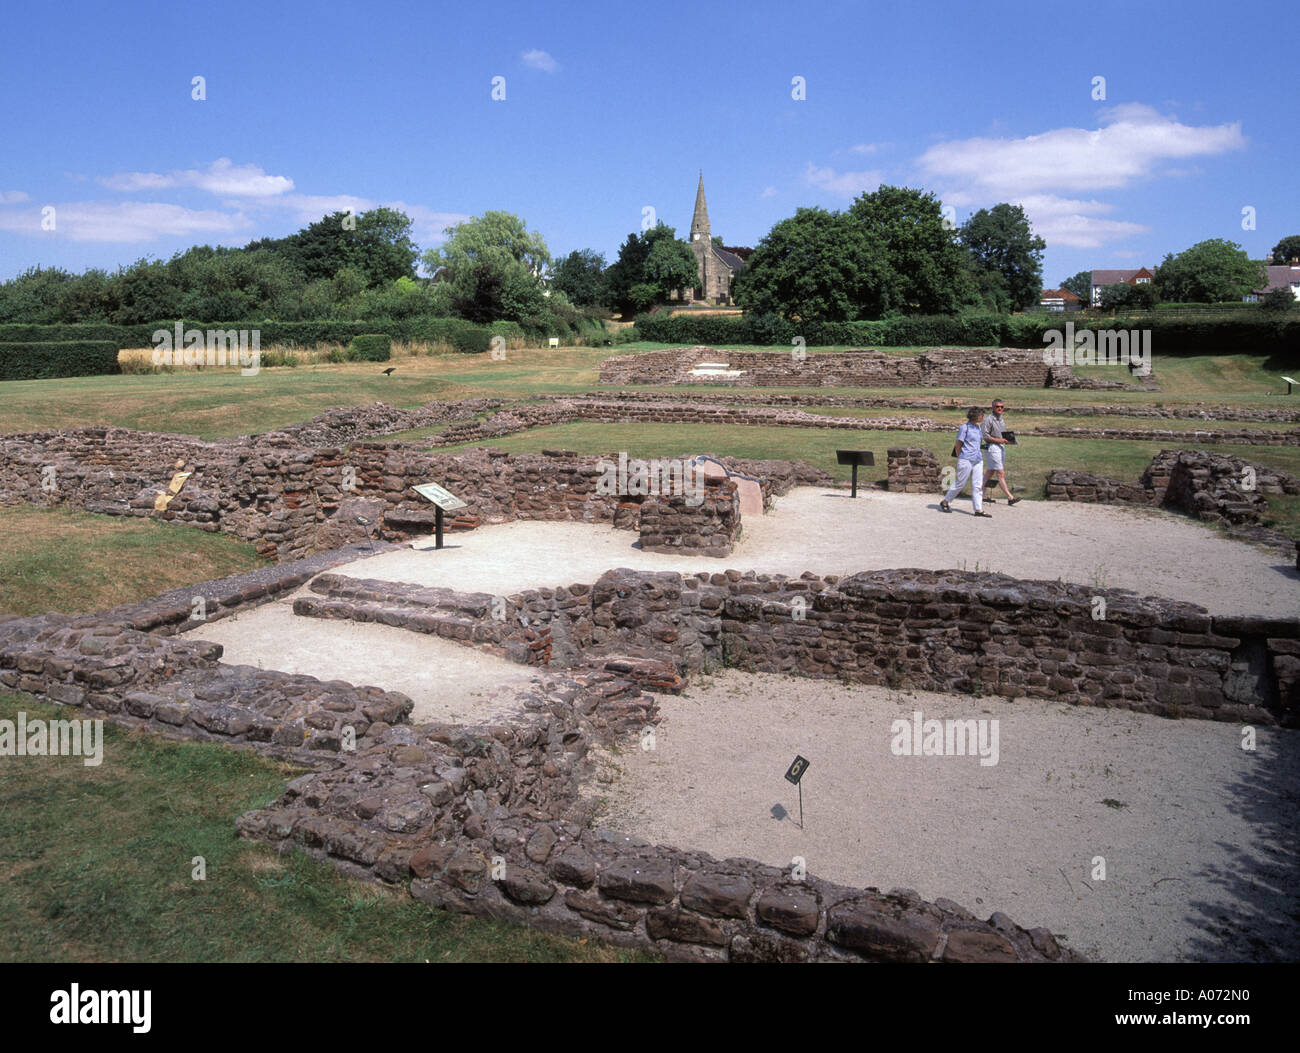 Historical Roman Empire ancient ruins of settlement layout of Letocetum on Watling Street village of Wall near Lichfield in Staffordshire Britain UK - Stock Image